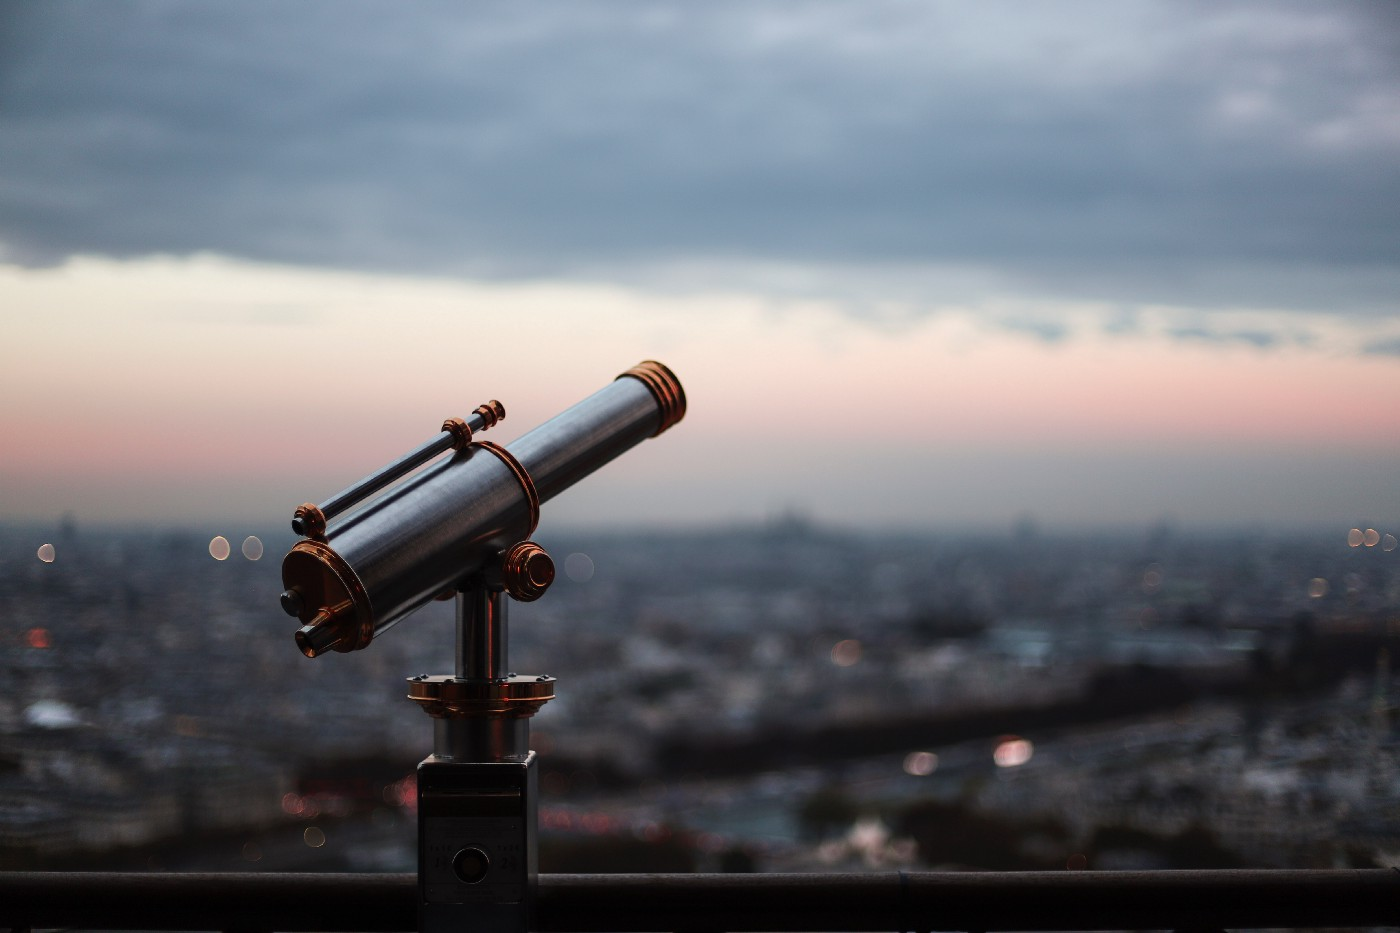 Telescope pointing out over a cityscape with a beautiful pink tinge of sky